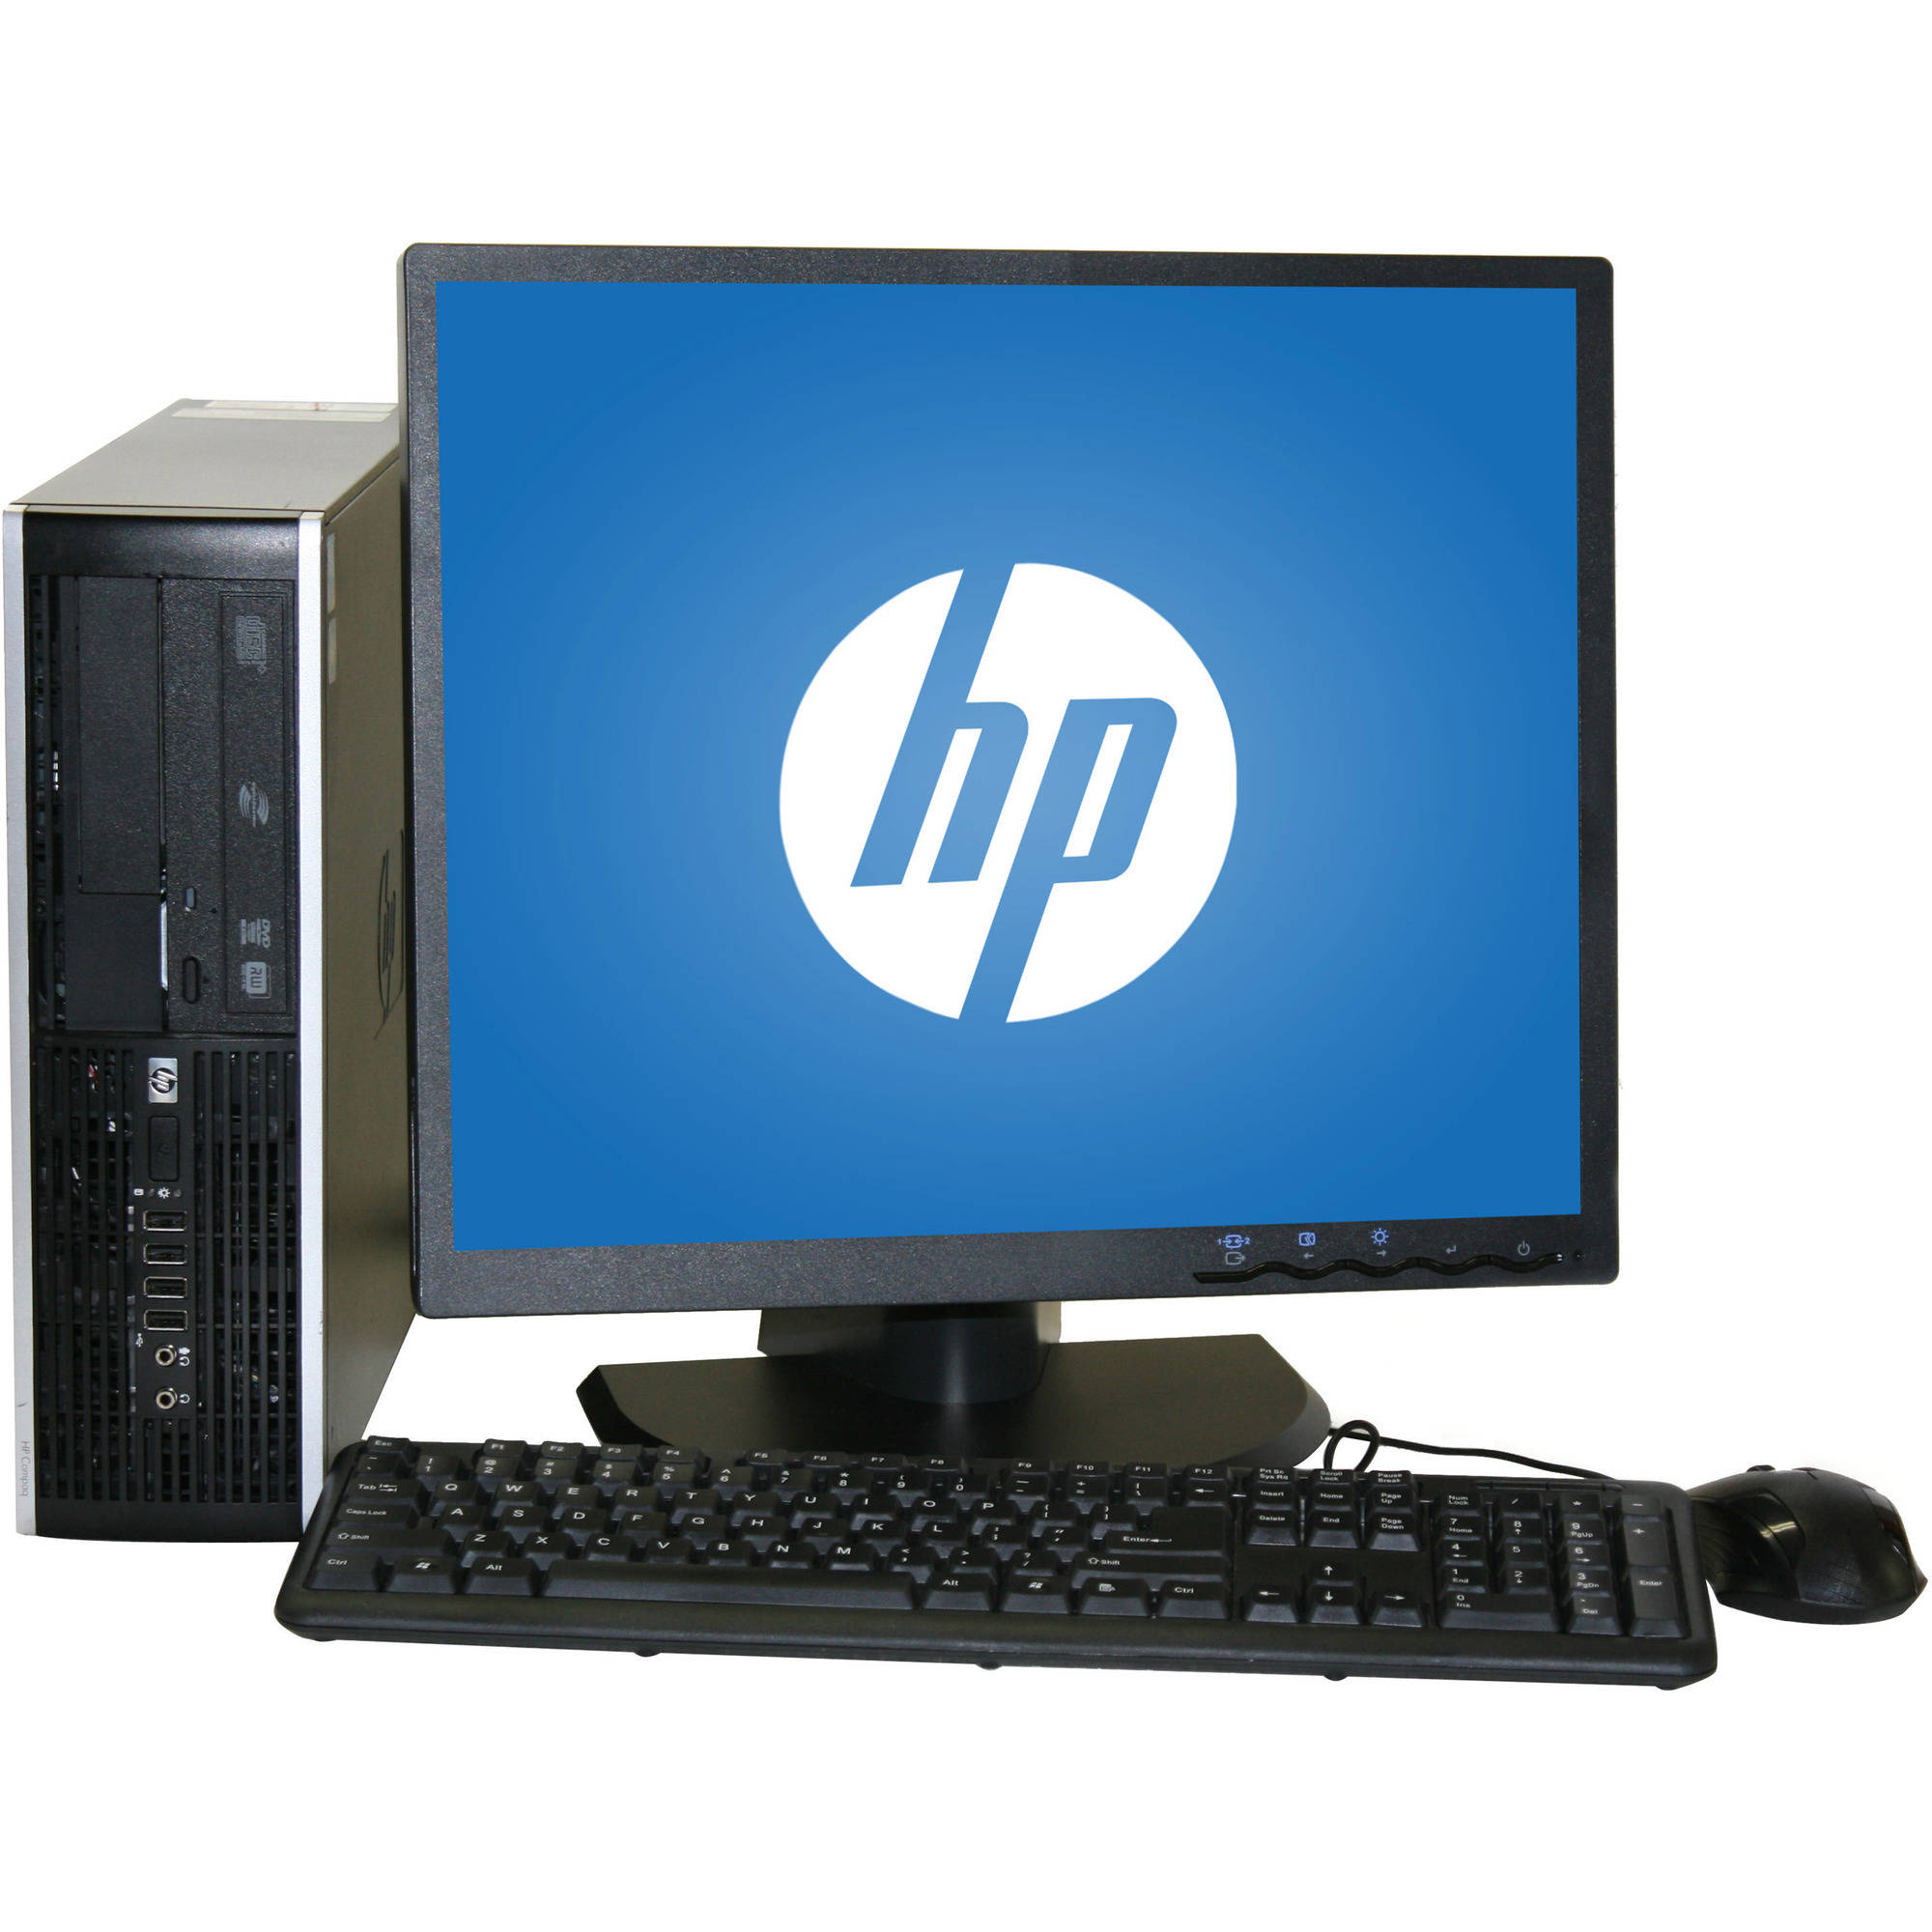 "Refurbished HP 6000 Desktop PC with Intel Core 2 Duo Processor, 4GB Memory, 19"" Monitor, 250GB Hard Drive and Windows 10 Home"